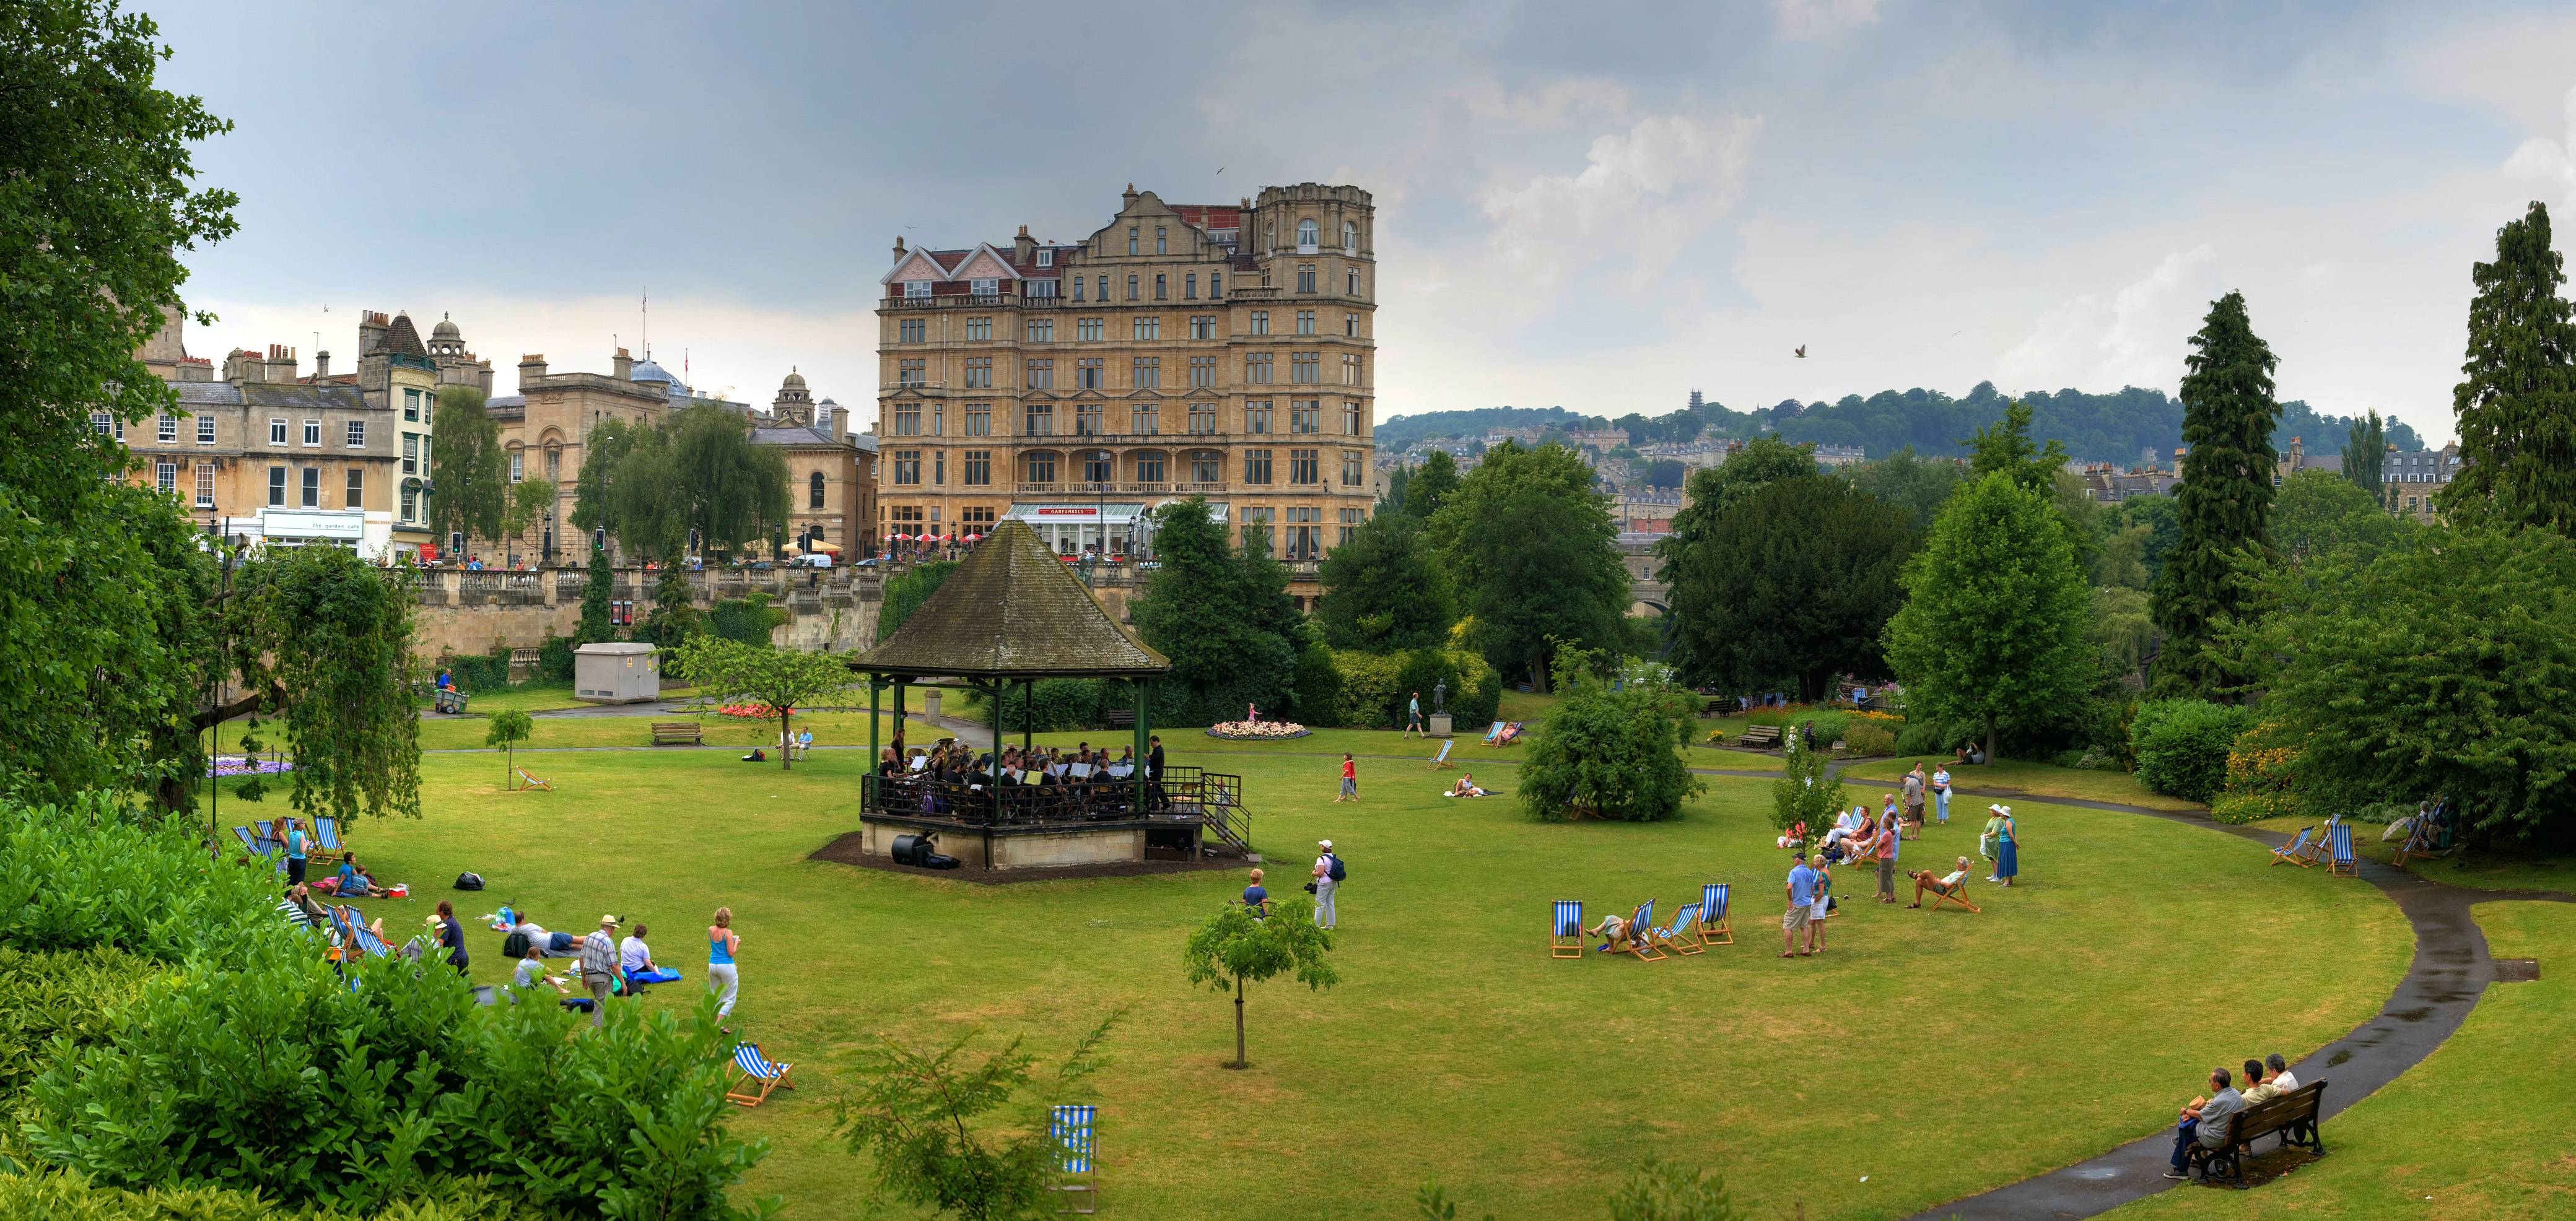 bath - parade gardens - july 2006.jpg